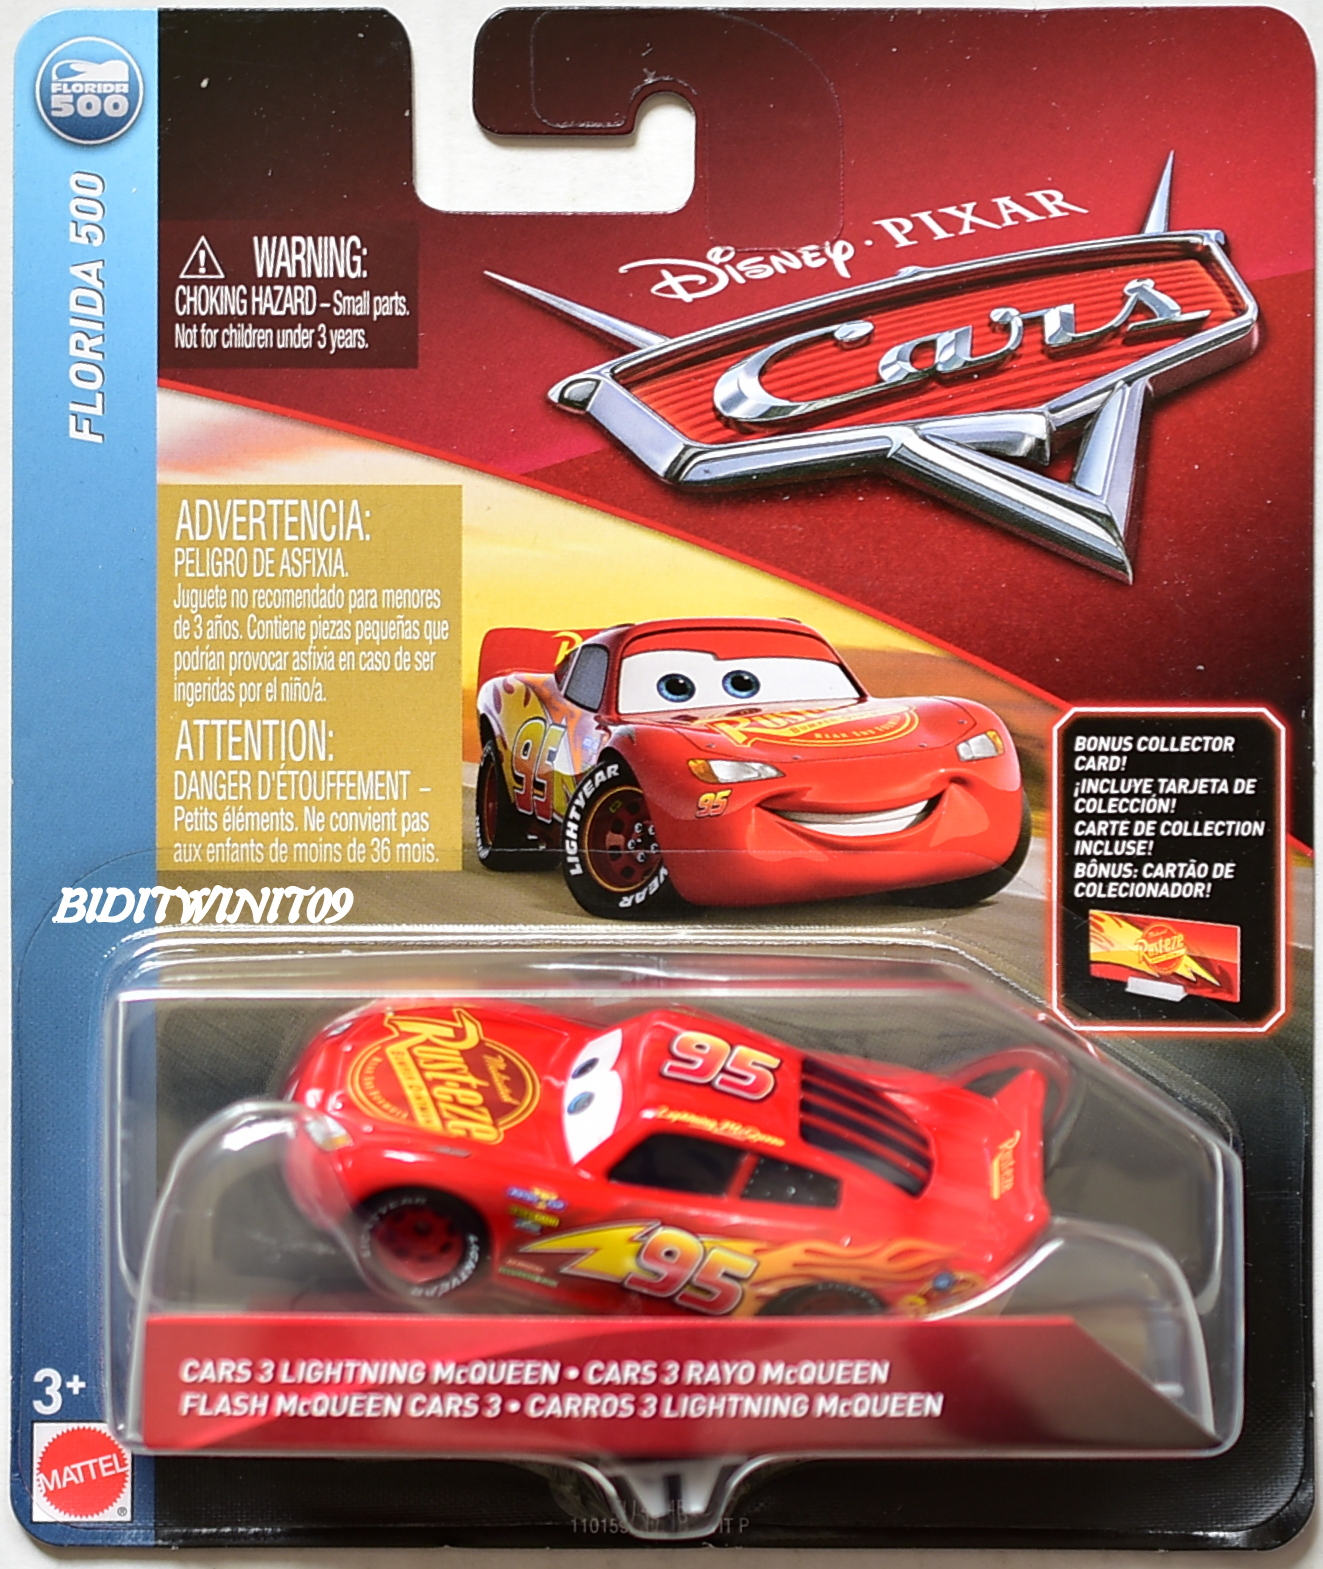 DISNEY PIXAR CARS 2018 FLORIDA 500 RAYO MCQUEEN FLASH